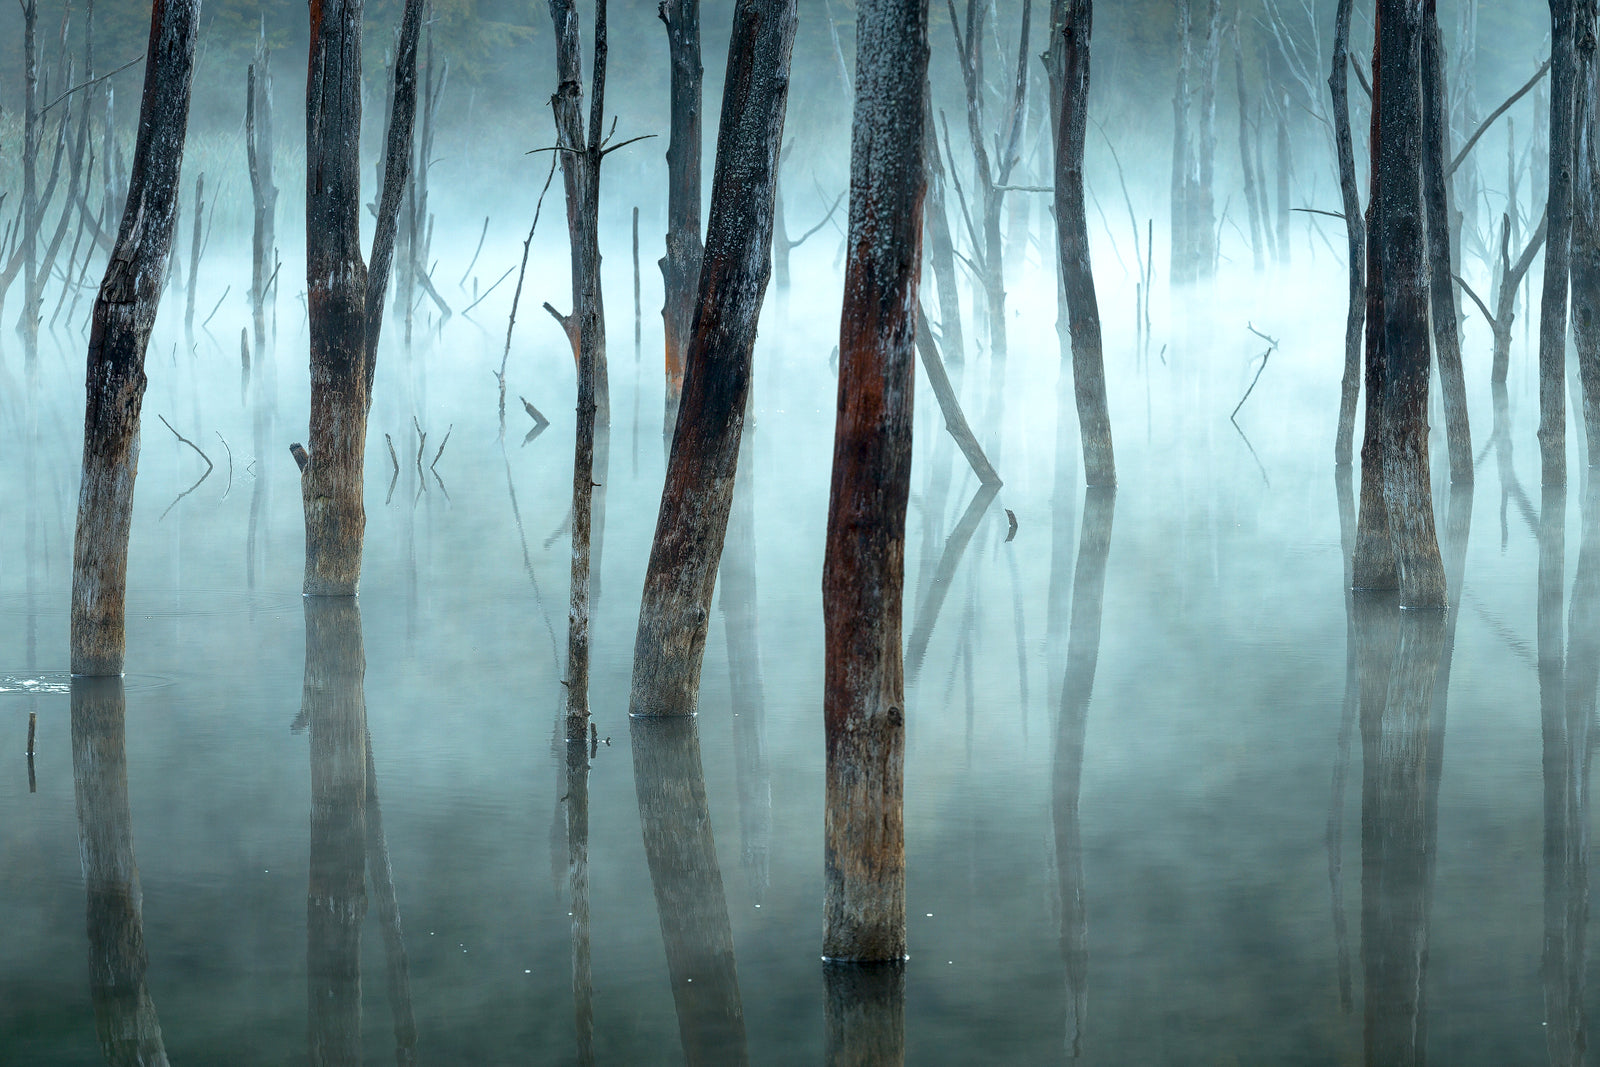 Foto Gheorghe Popa - Cold and misty, Lacul Cuejdel.